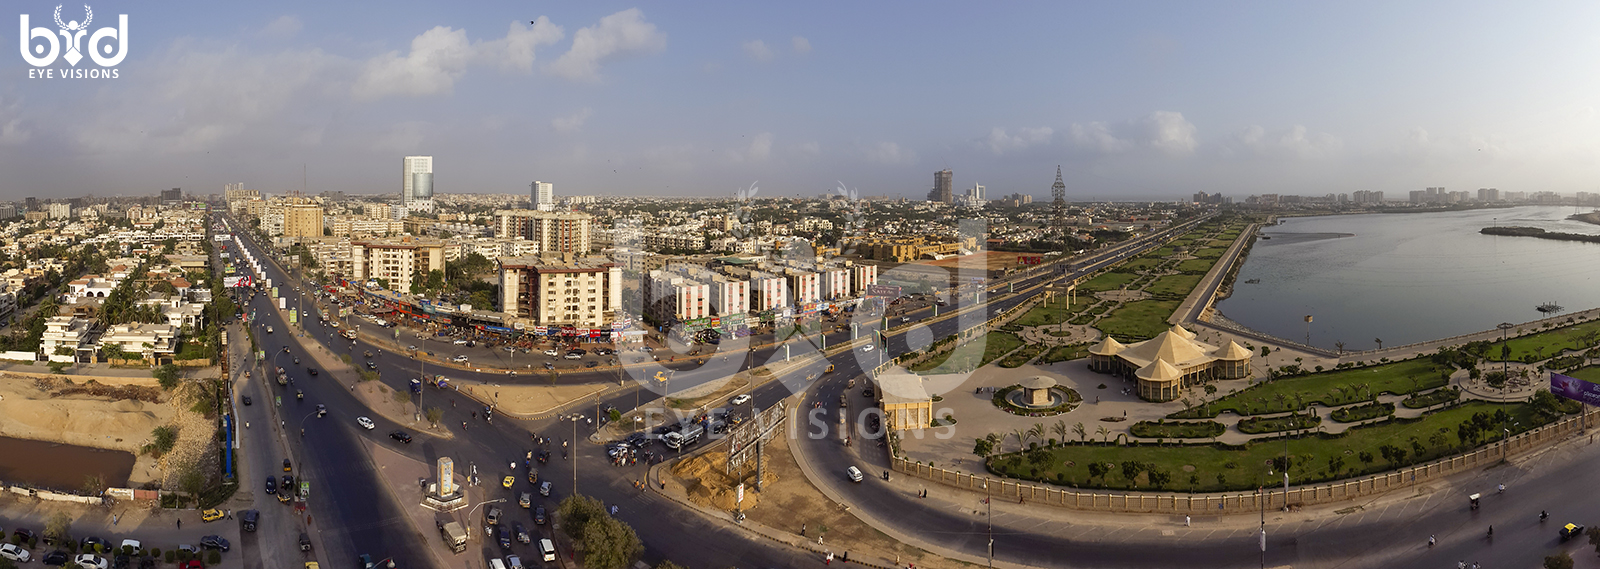 Karachi-From-Top-of-Continental-Biscuit-